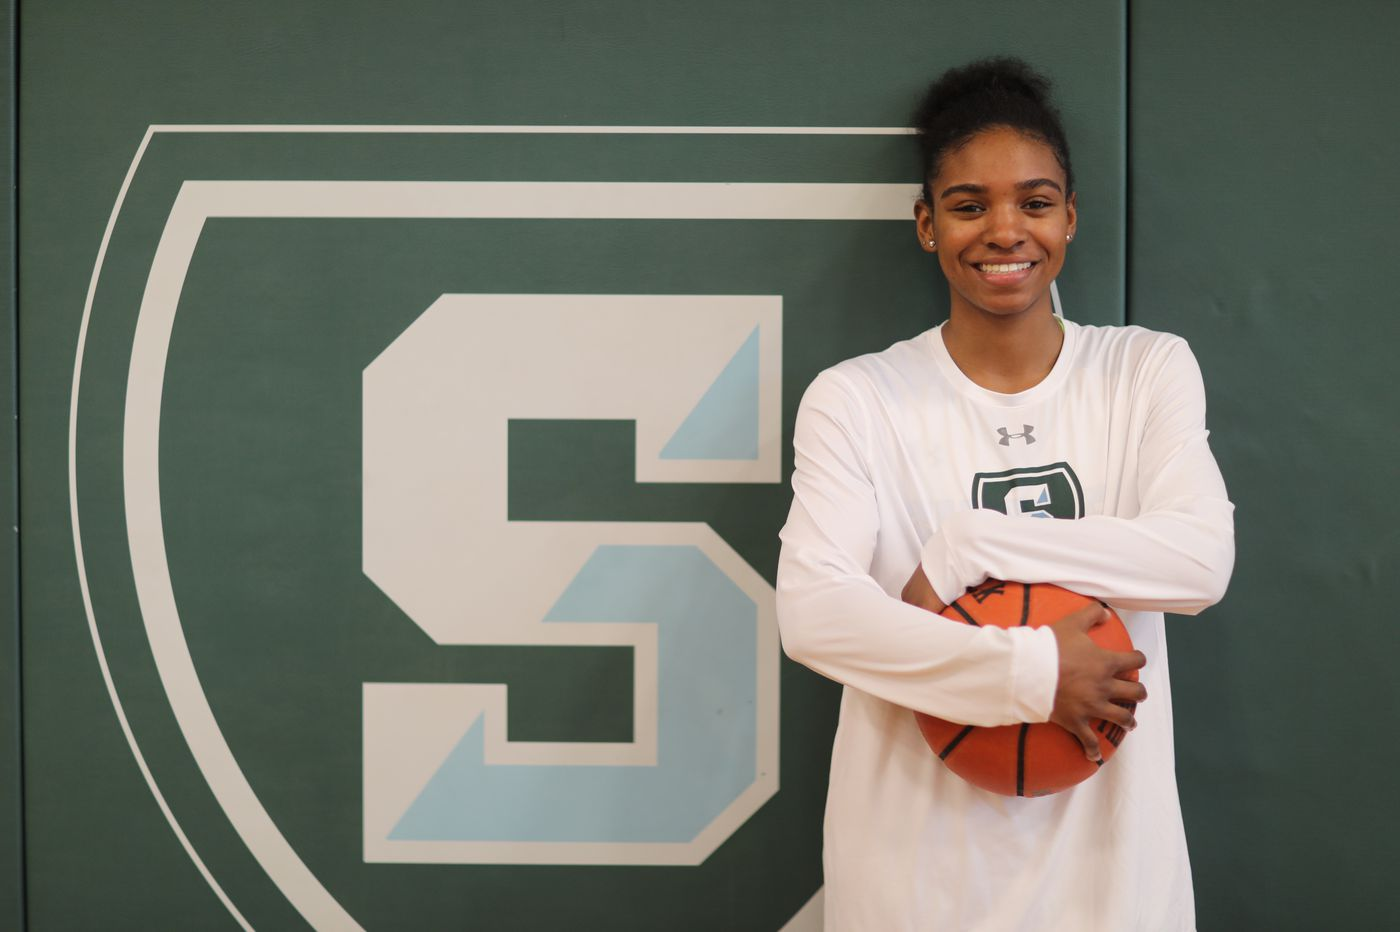 Shipley 1,000-point scorer Lauren Ross looks forward to a Friends League title and college ball at St. Joseph's